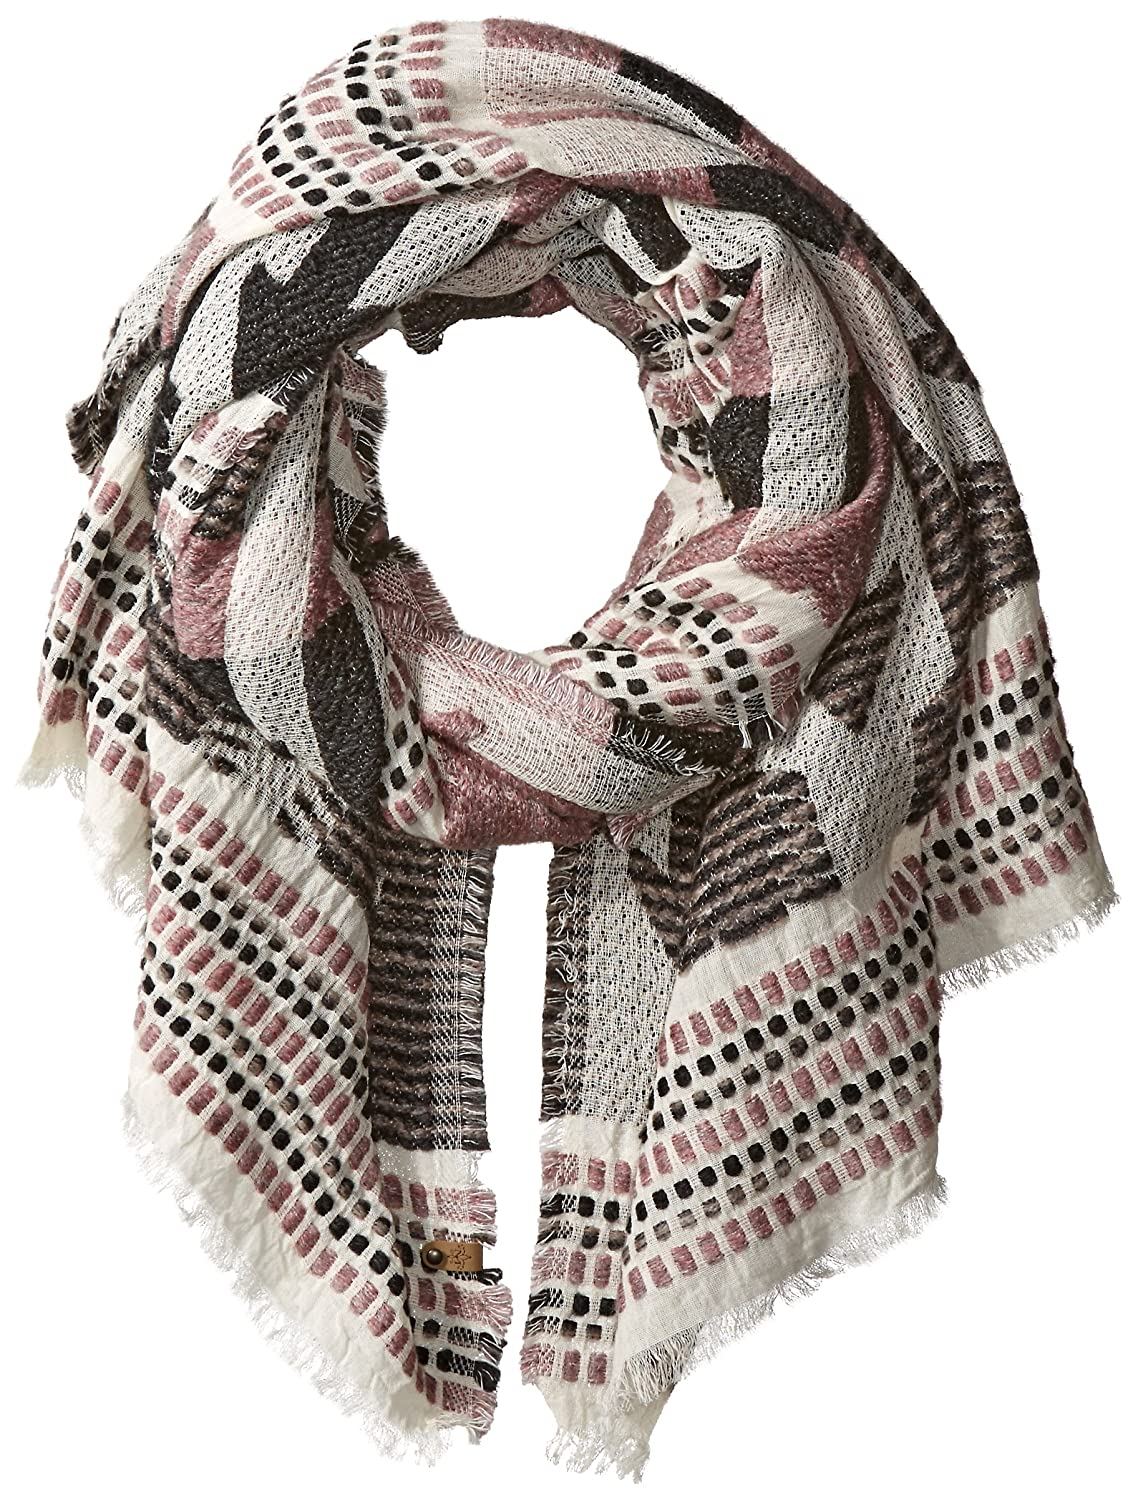 Armani Exchange Men's Knitted Pattern Scarf Green/Cream One Size 954003-6A008